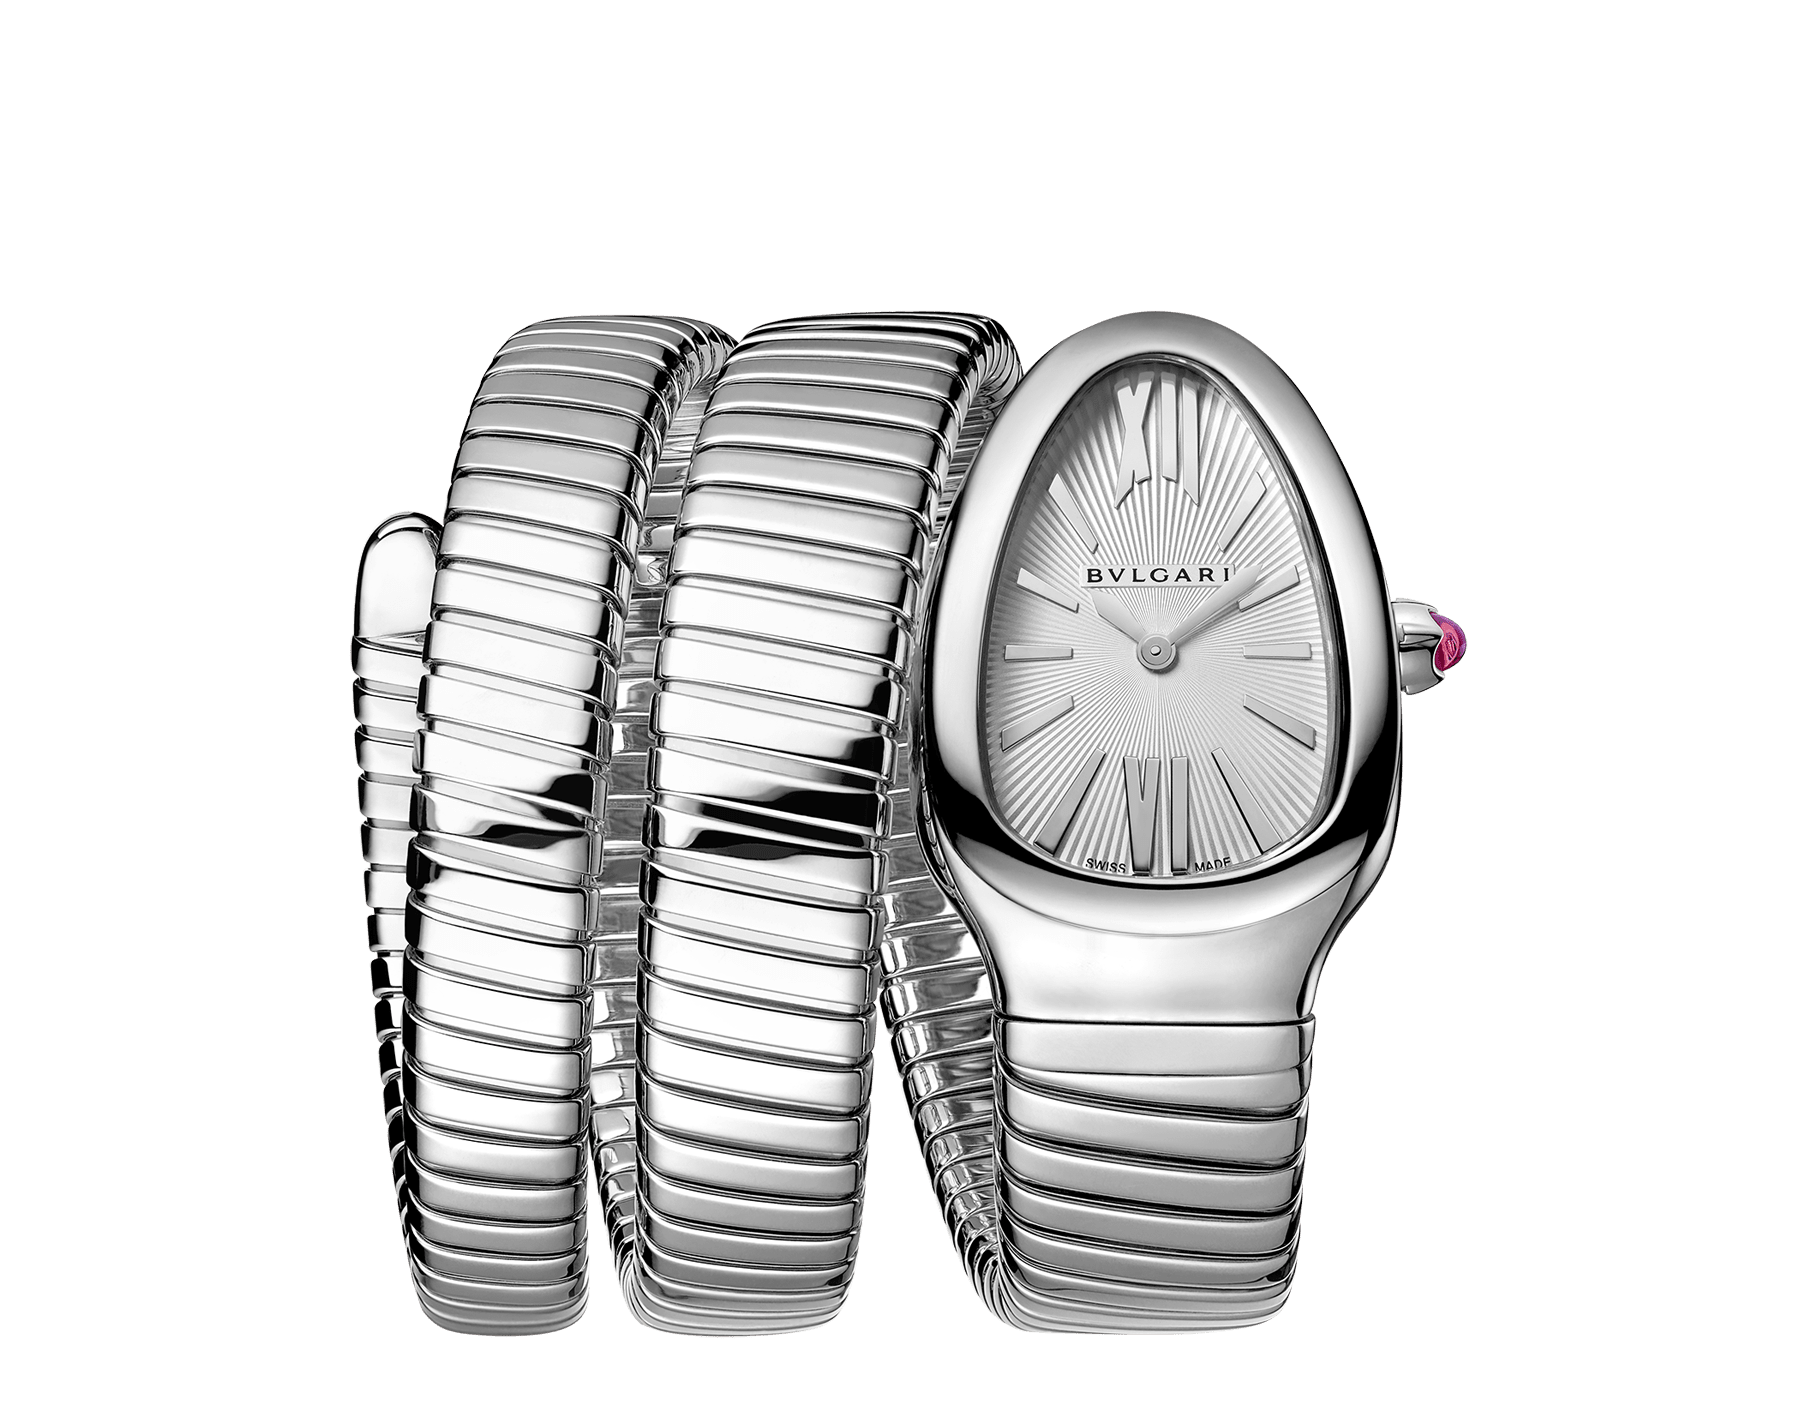 Serpenti Tubogas double spiral watch in stainless steel case and bracelet, with silver opaline dial. 101911 image 1